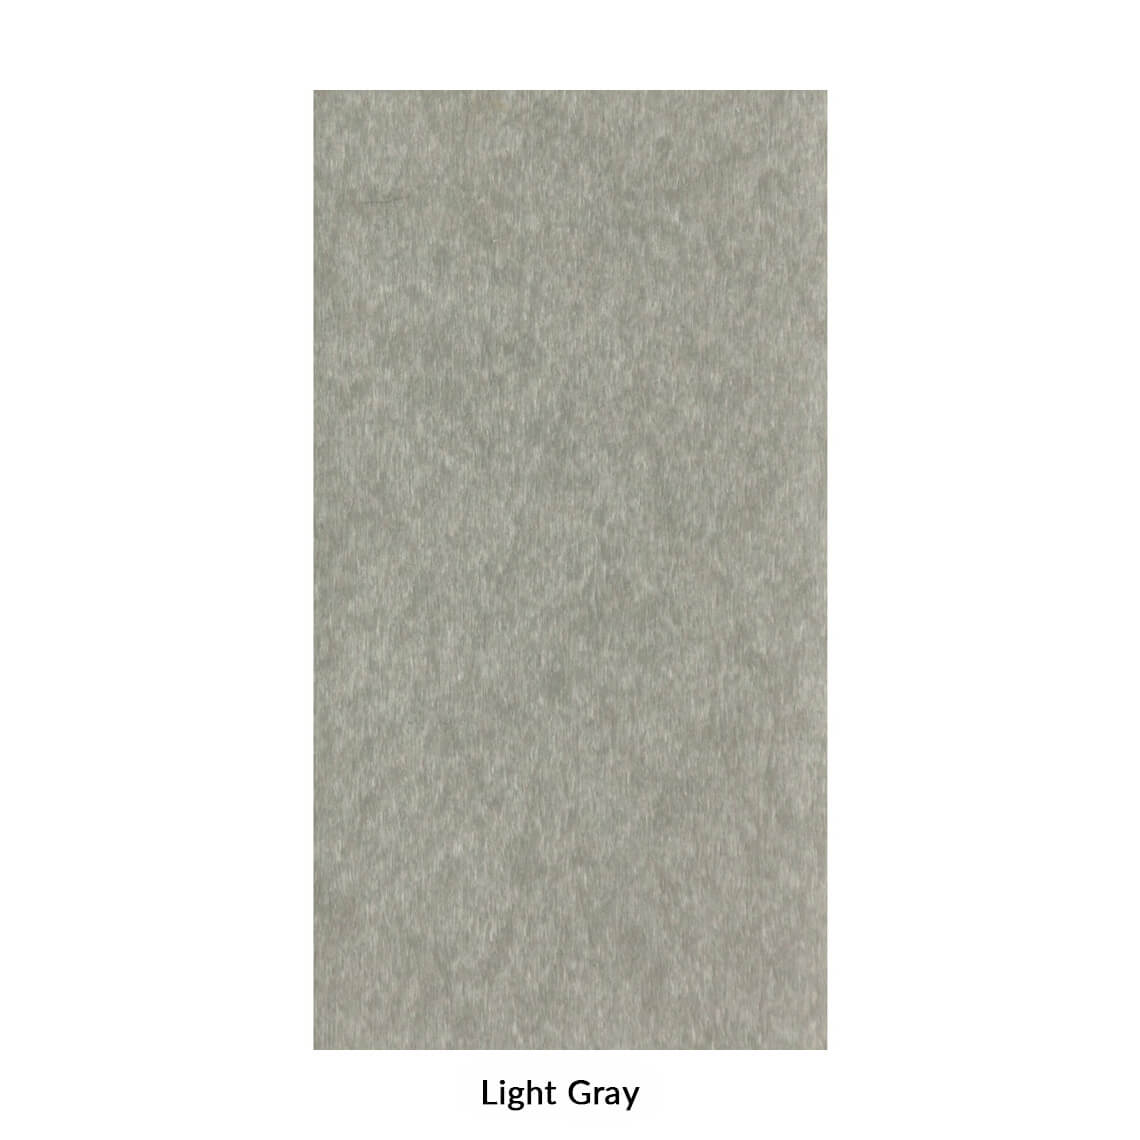 4.-light-gray.jpg